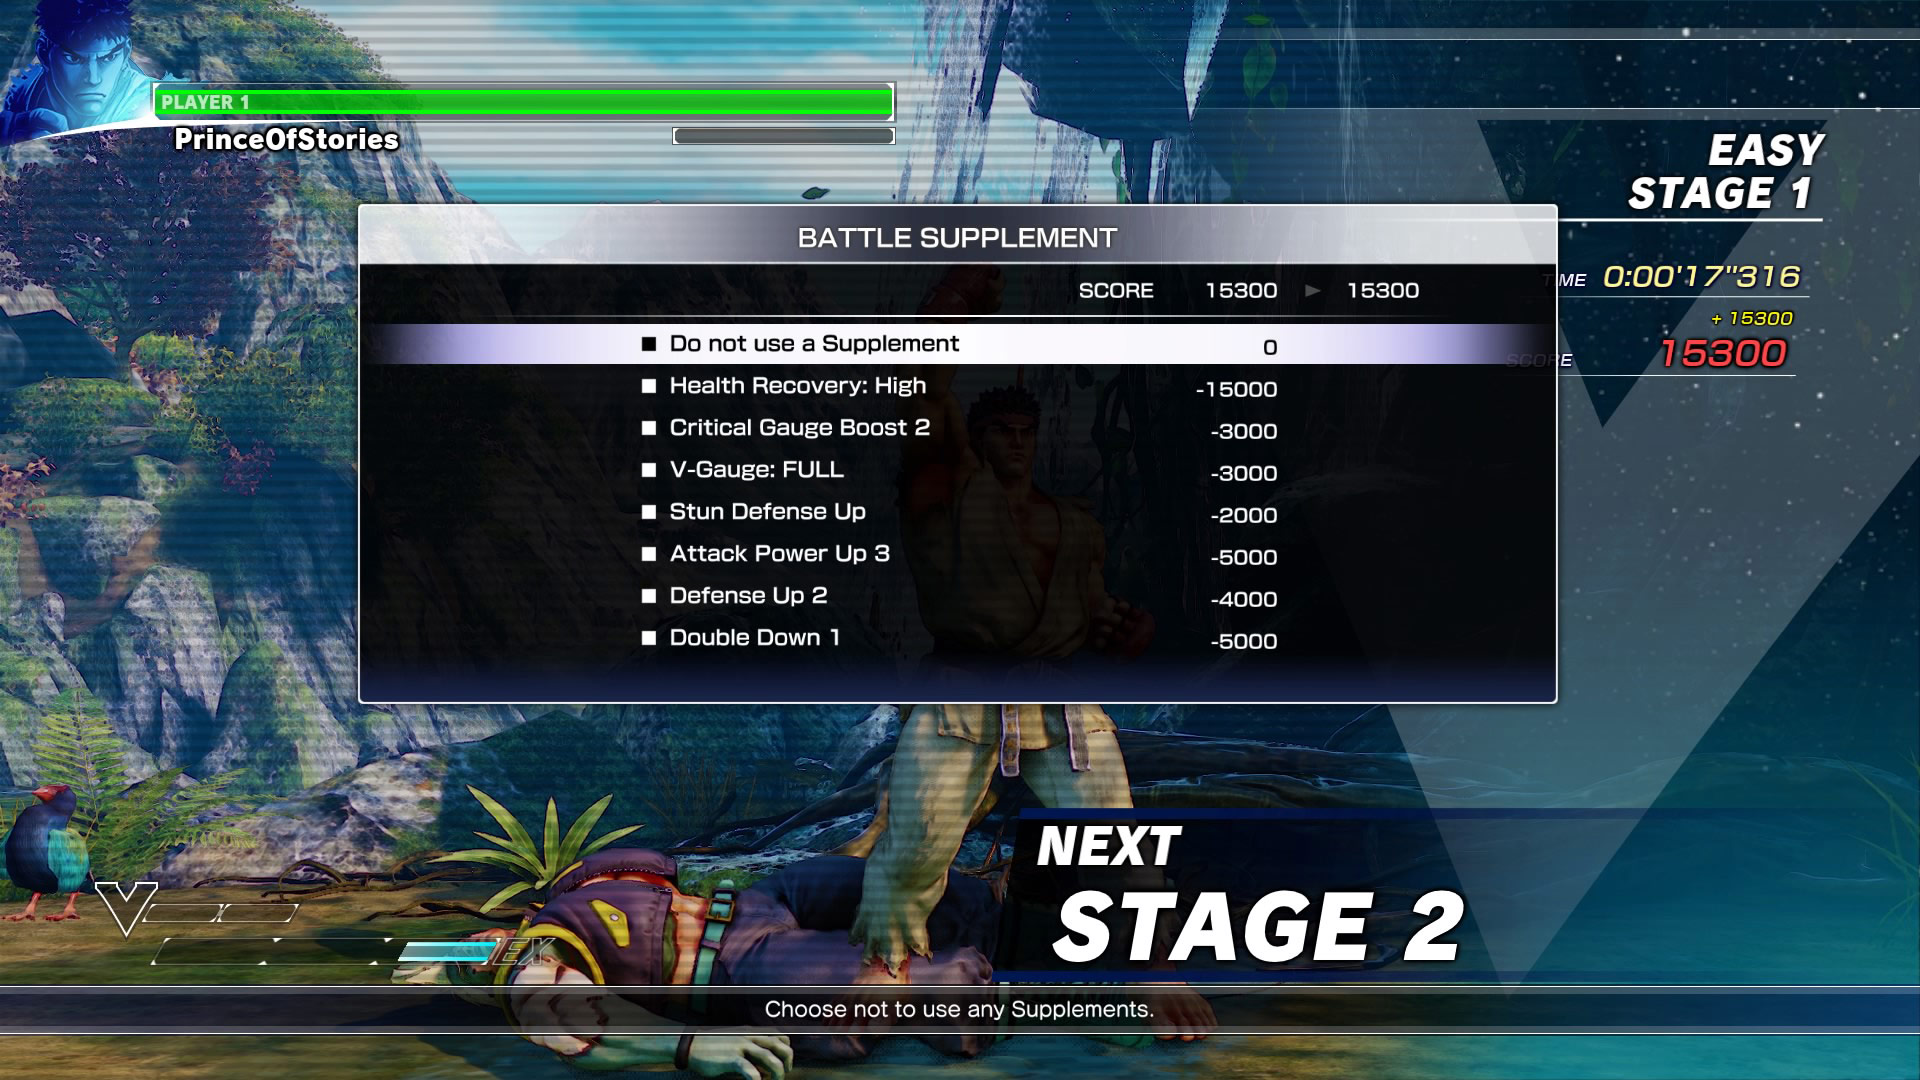 Street Fighter 5 review screenshots 11 out of 17 image gallery